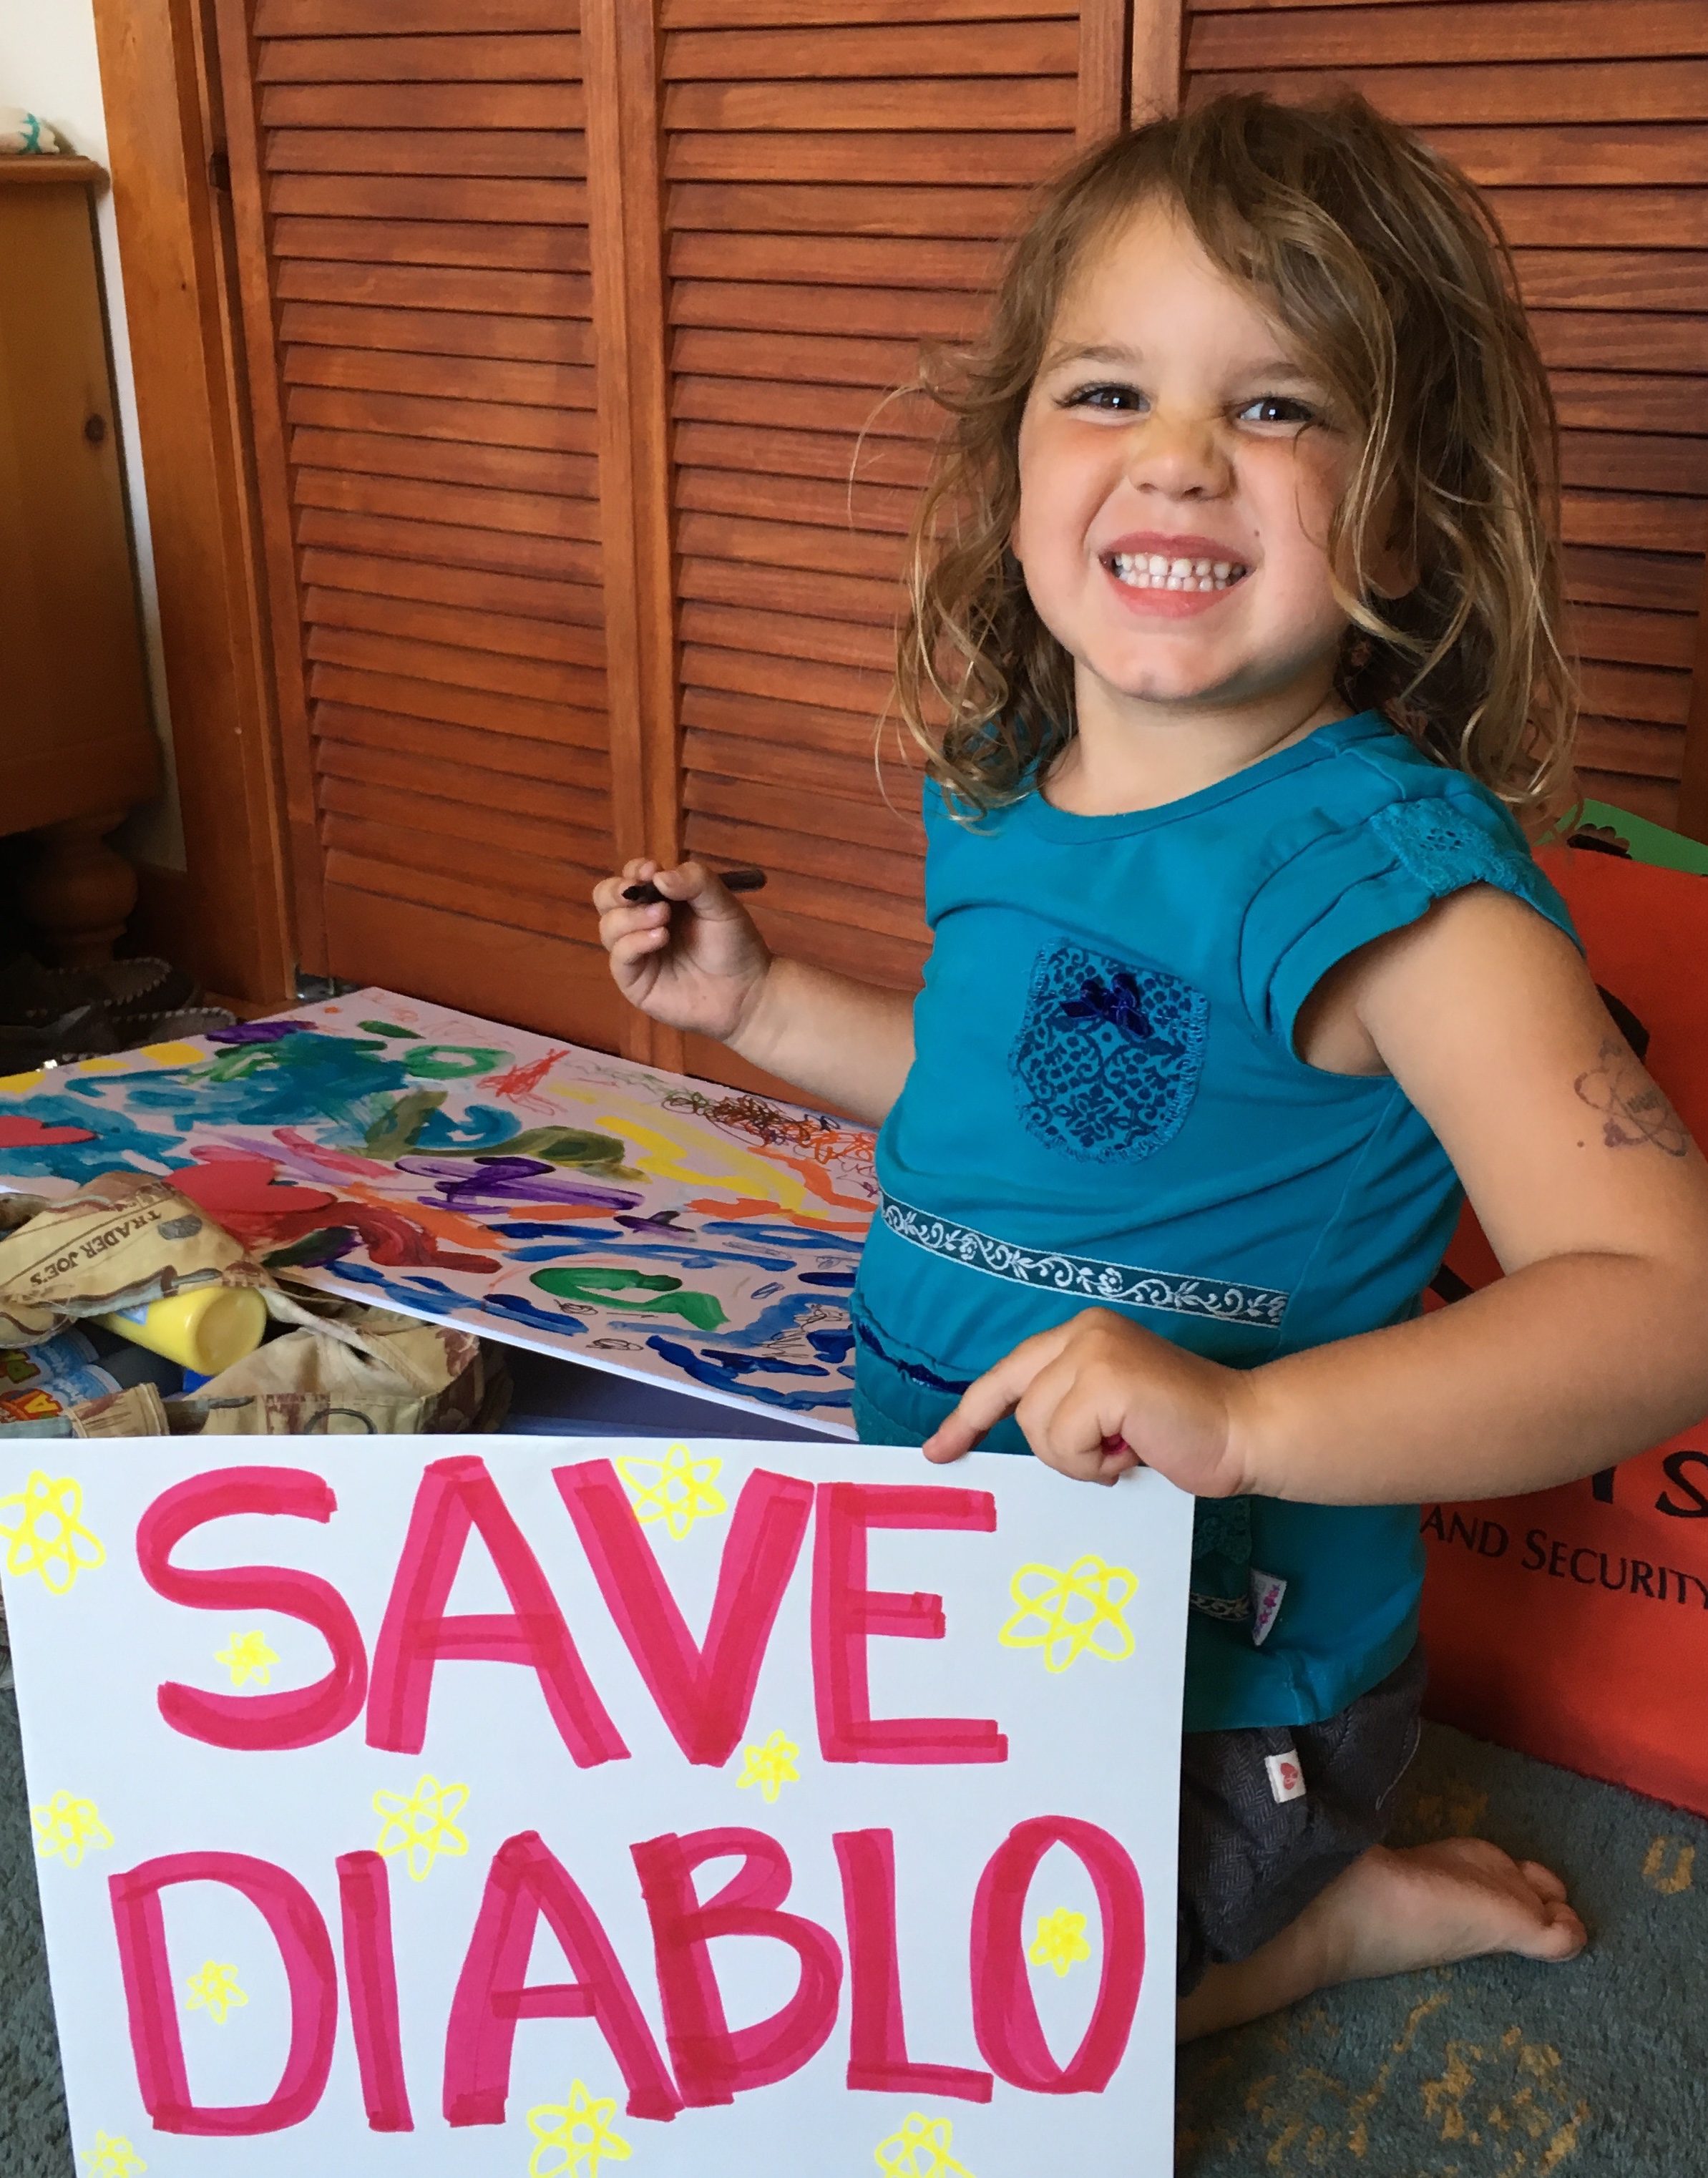 Kate Save Diablo sign.jpg